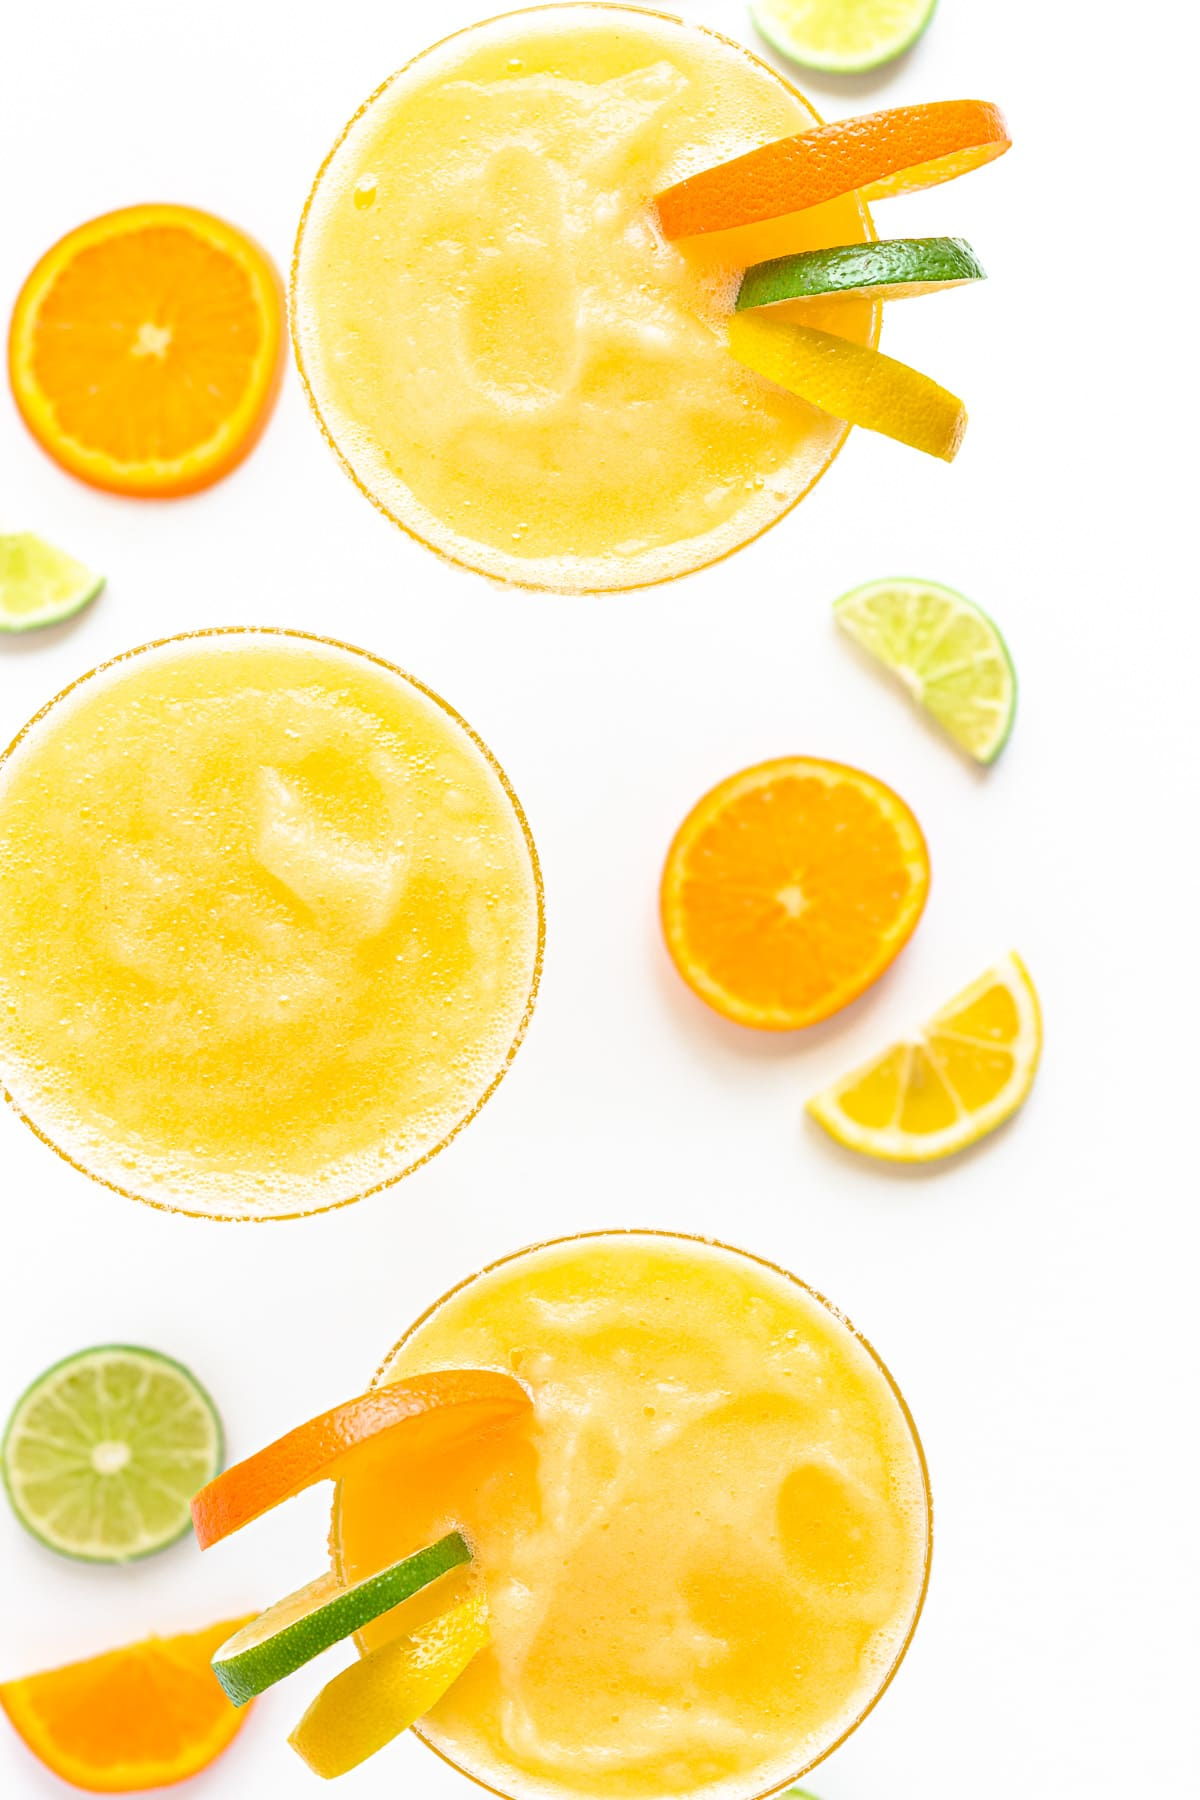 Overhead view of three frozen margaritas garnished with orange, lemon and lime slices.